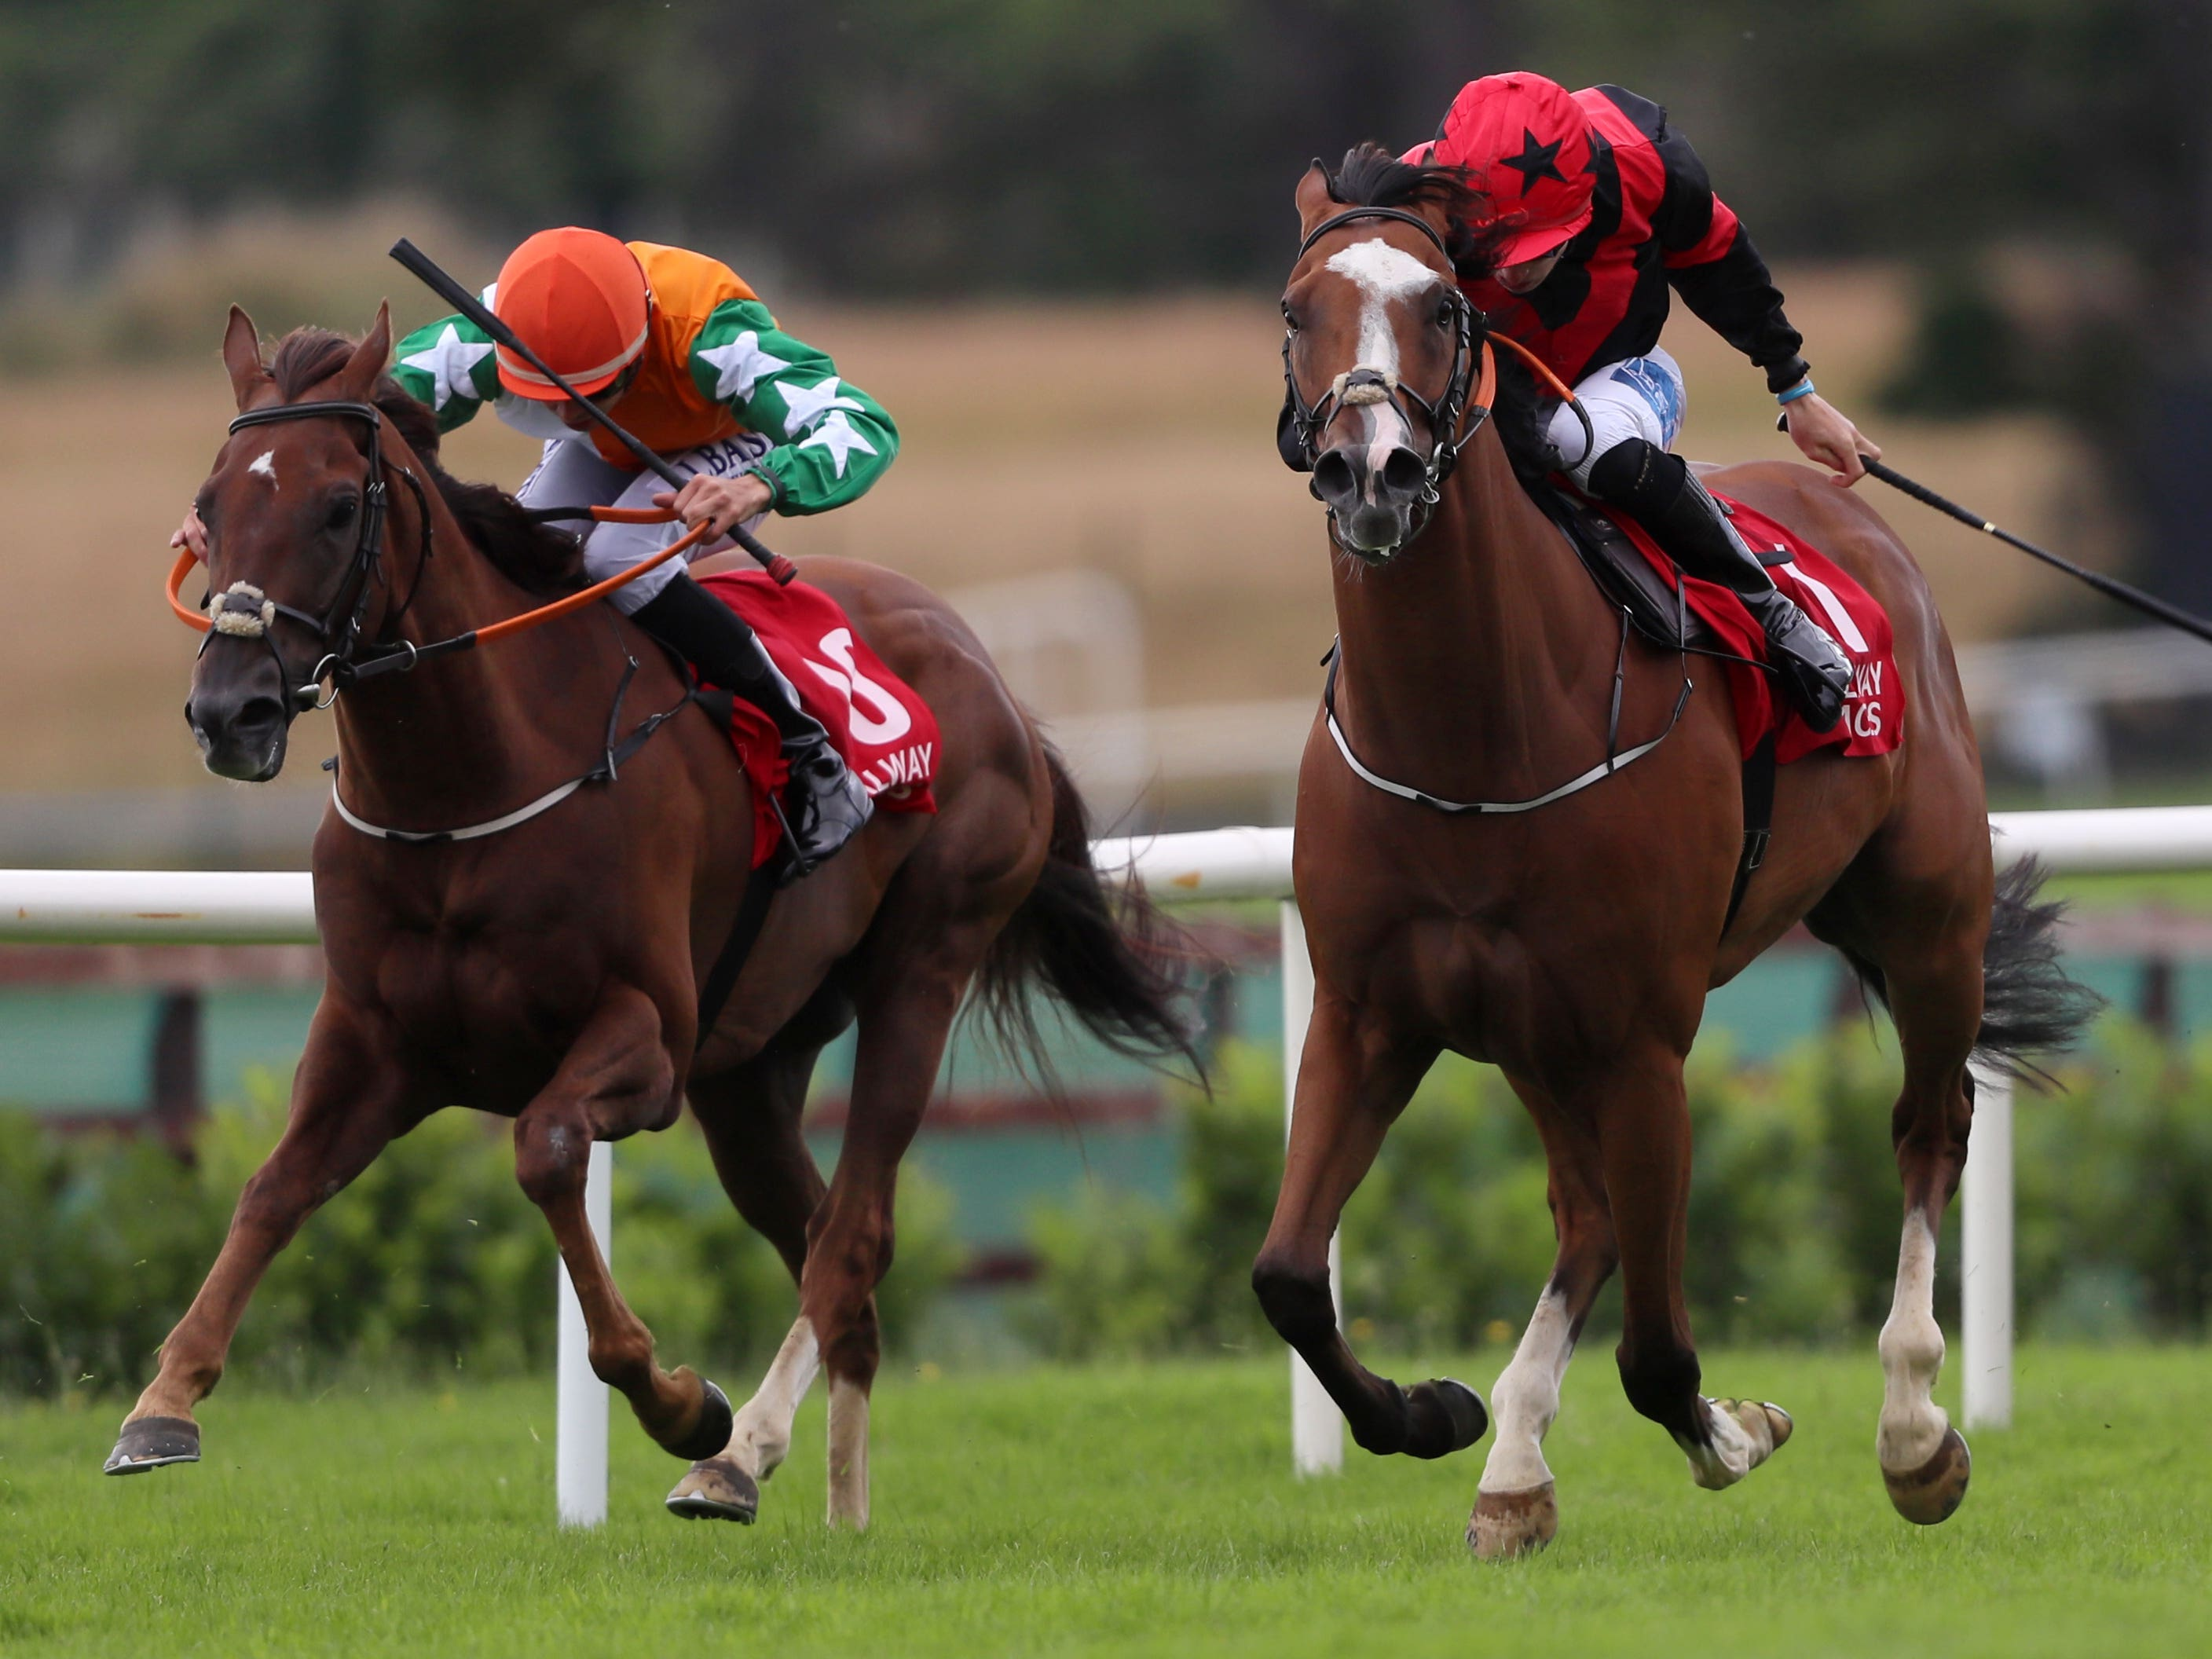 Current Option (right) winning the 'Ahonoora' Handicap at Galway (Brian Lawless/PA)